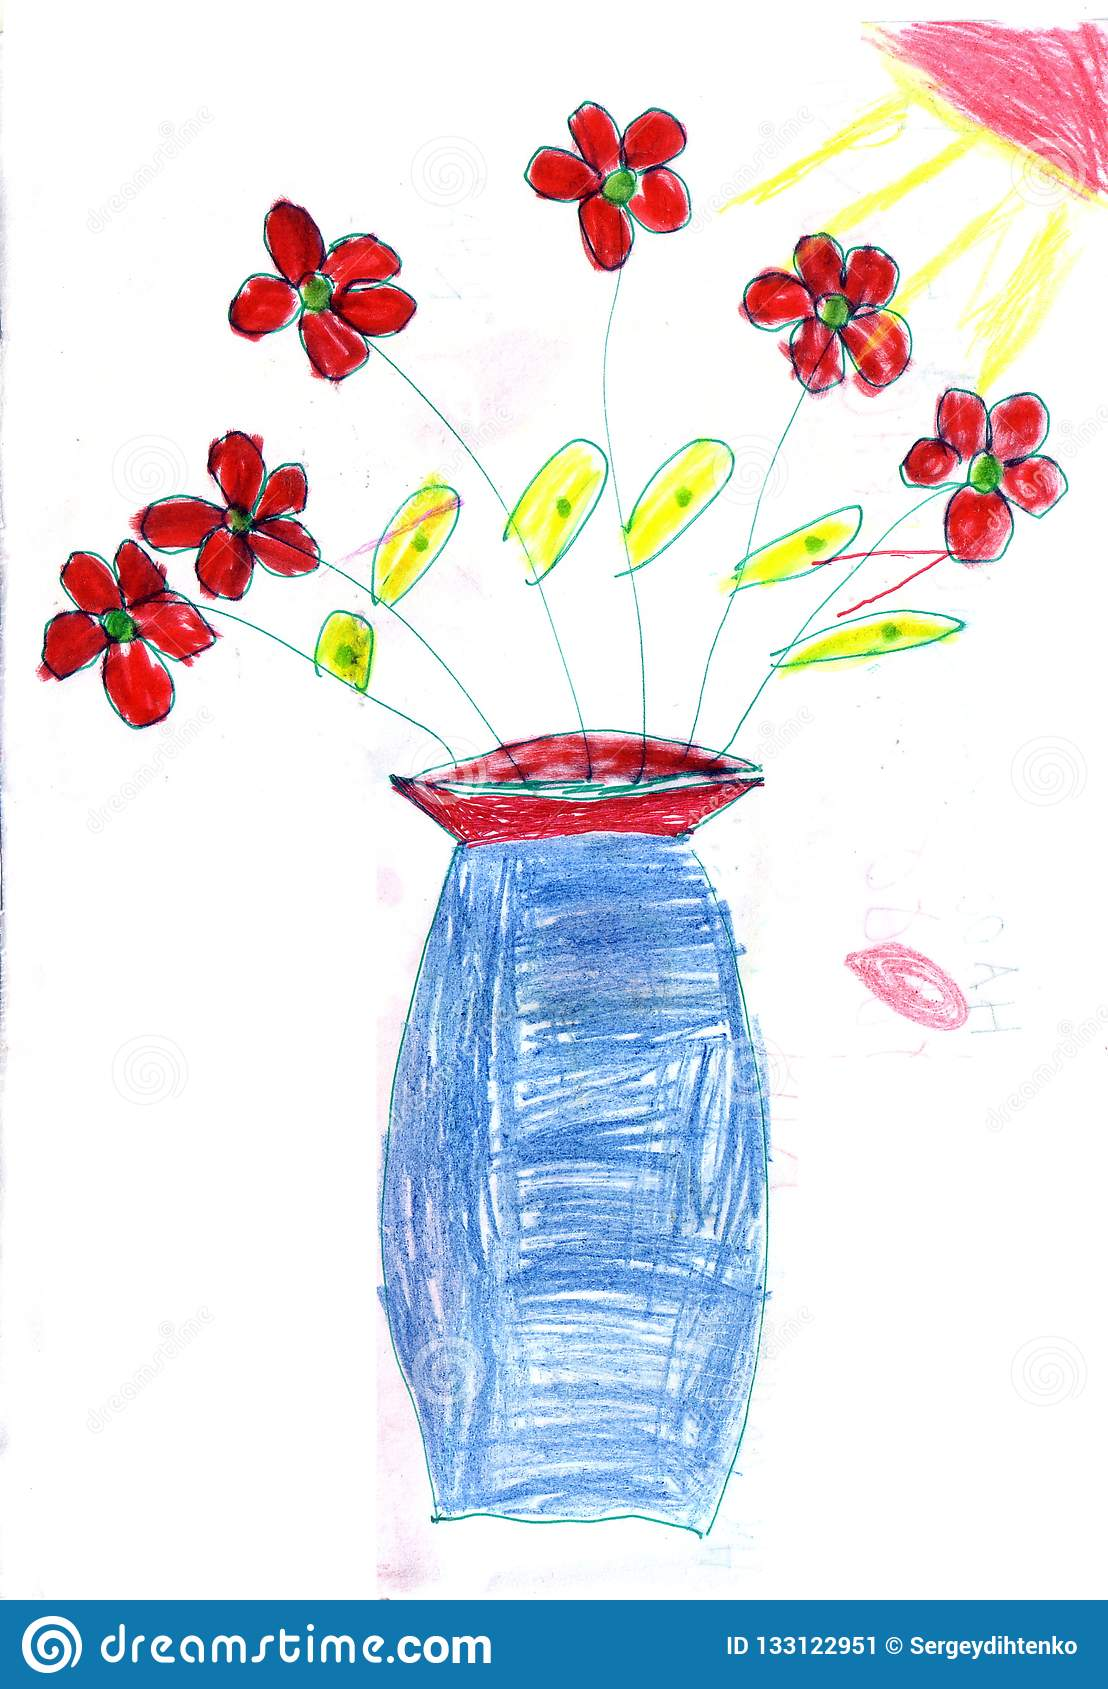 277 & Child`s Drawing Flowers In A Vase Stock Illustration ...